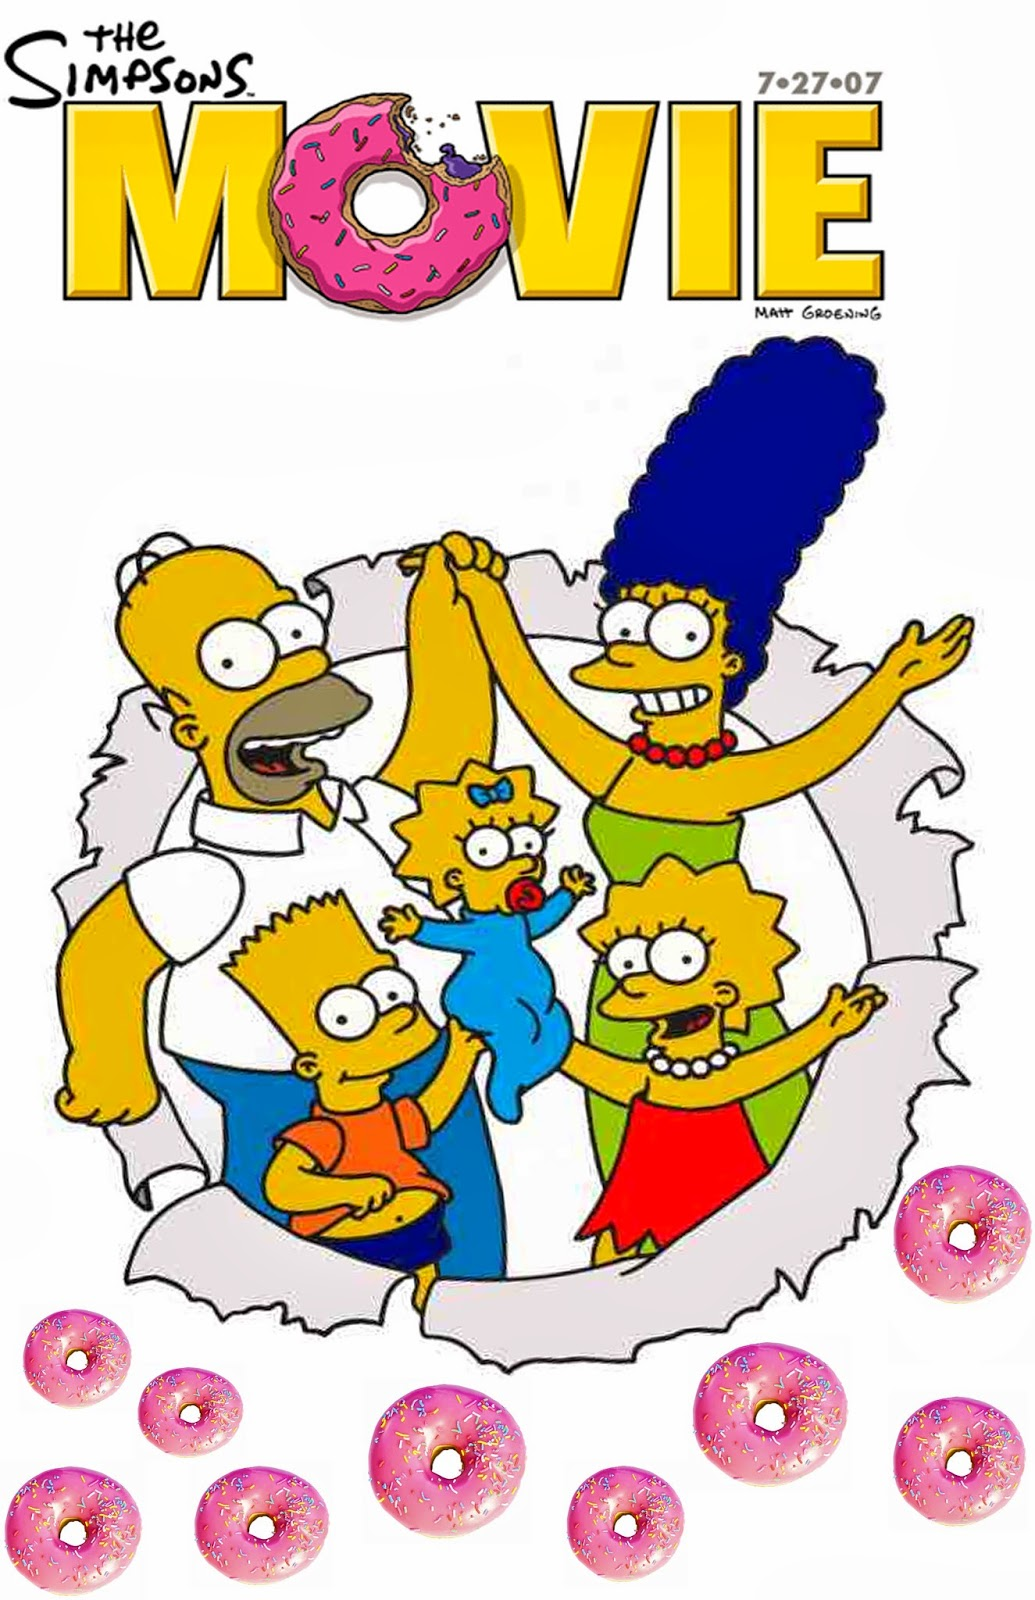 Beth Smith As Media Using Photoshop The Simpsons Movie Poster